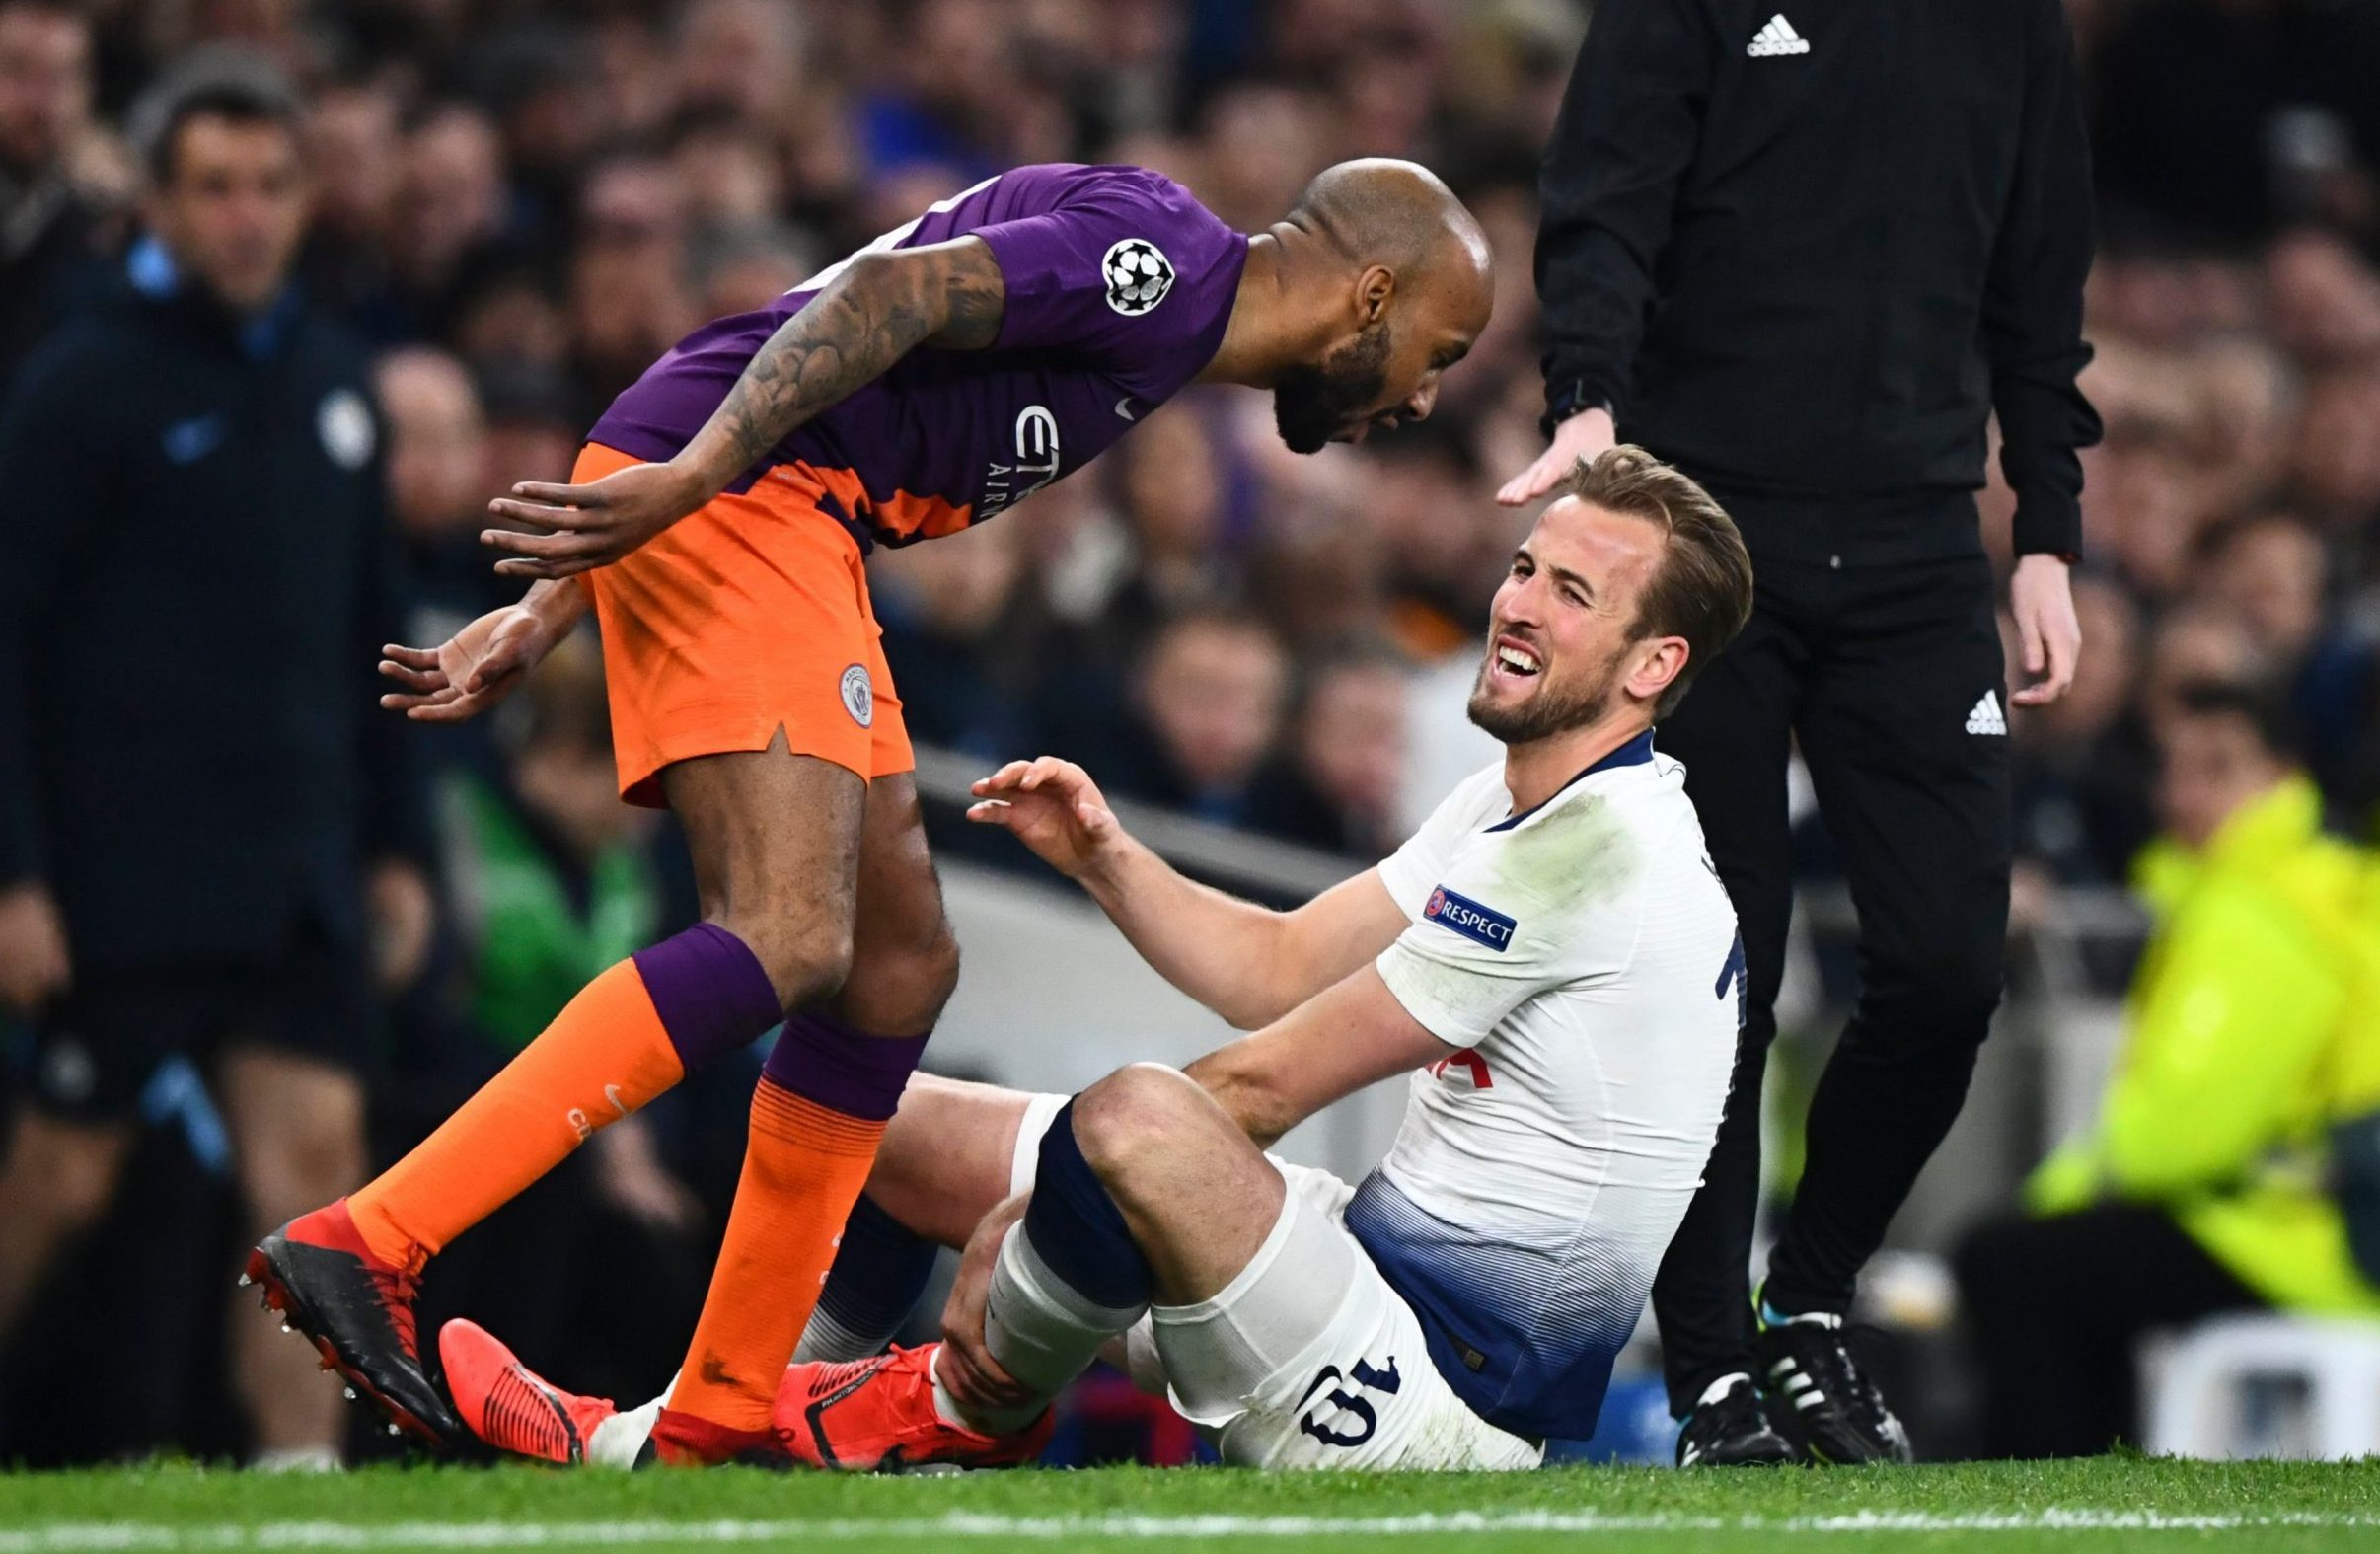 Harry Kane in danger of missing Tottenham run-in after suffering ankle injury during Man City clash